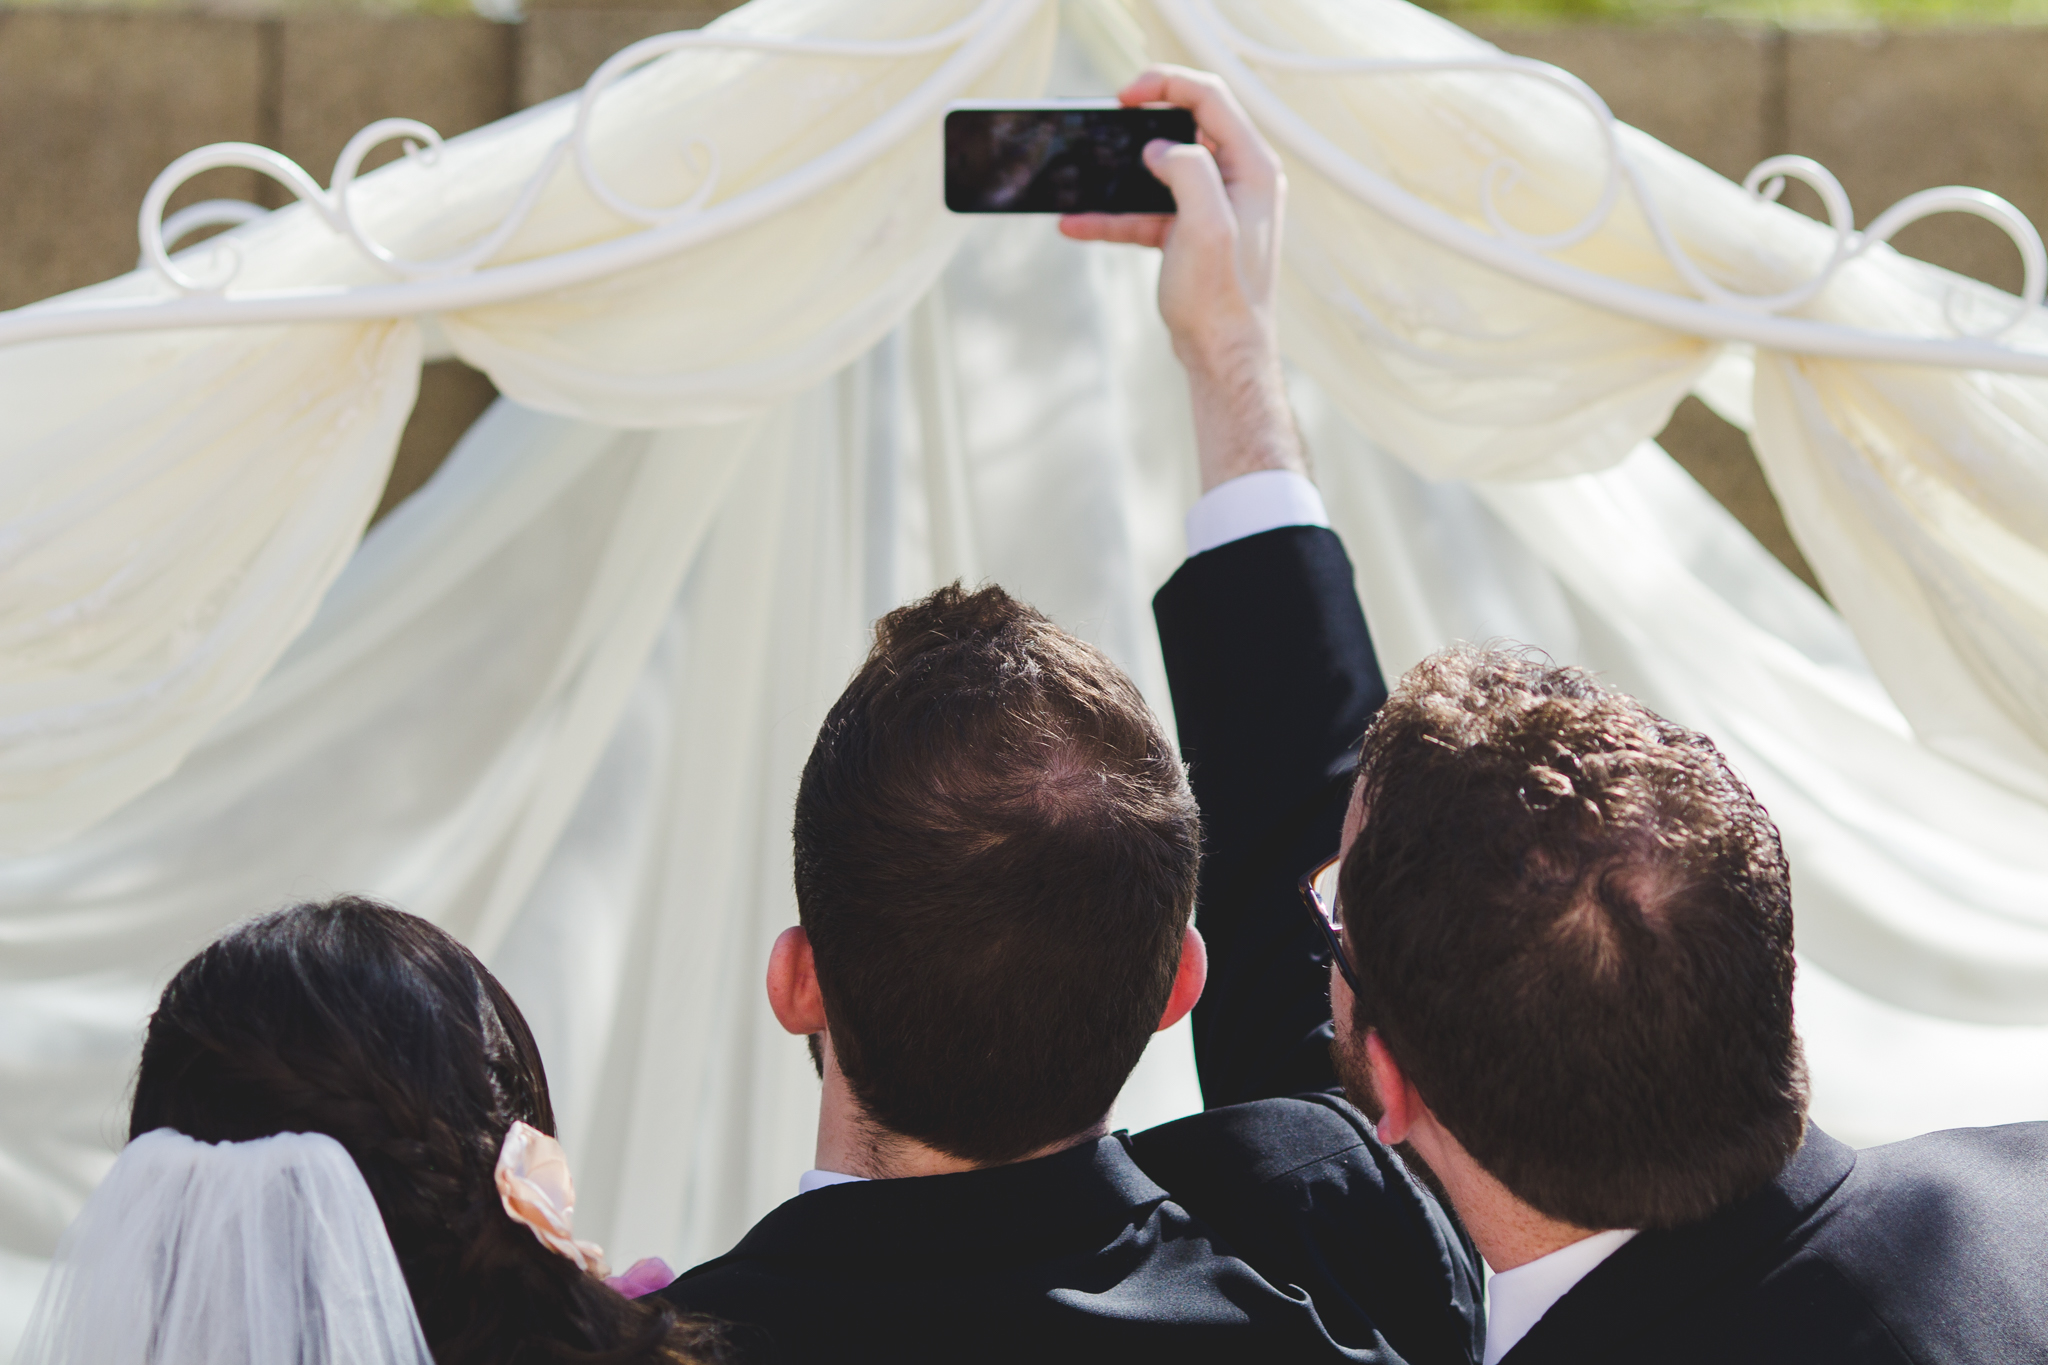 officiant snaps pic before proceeding sd